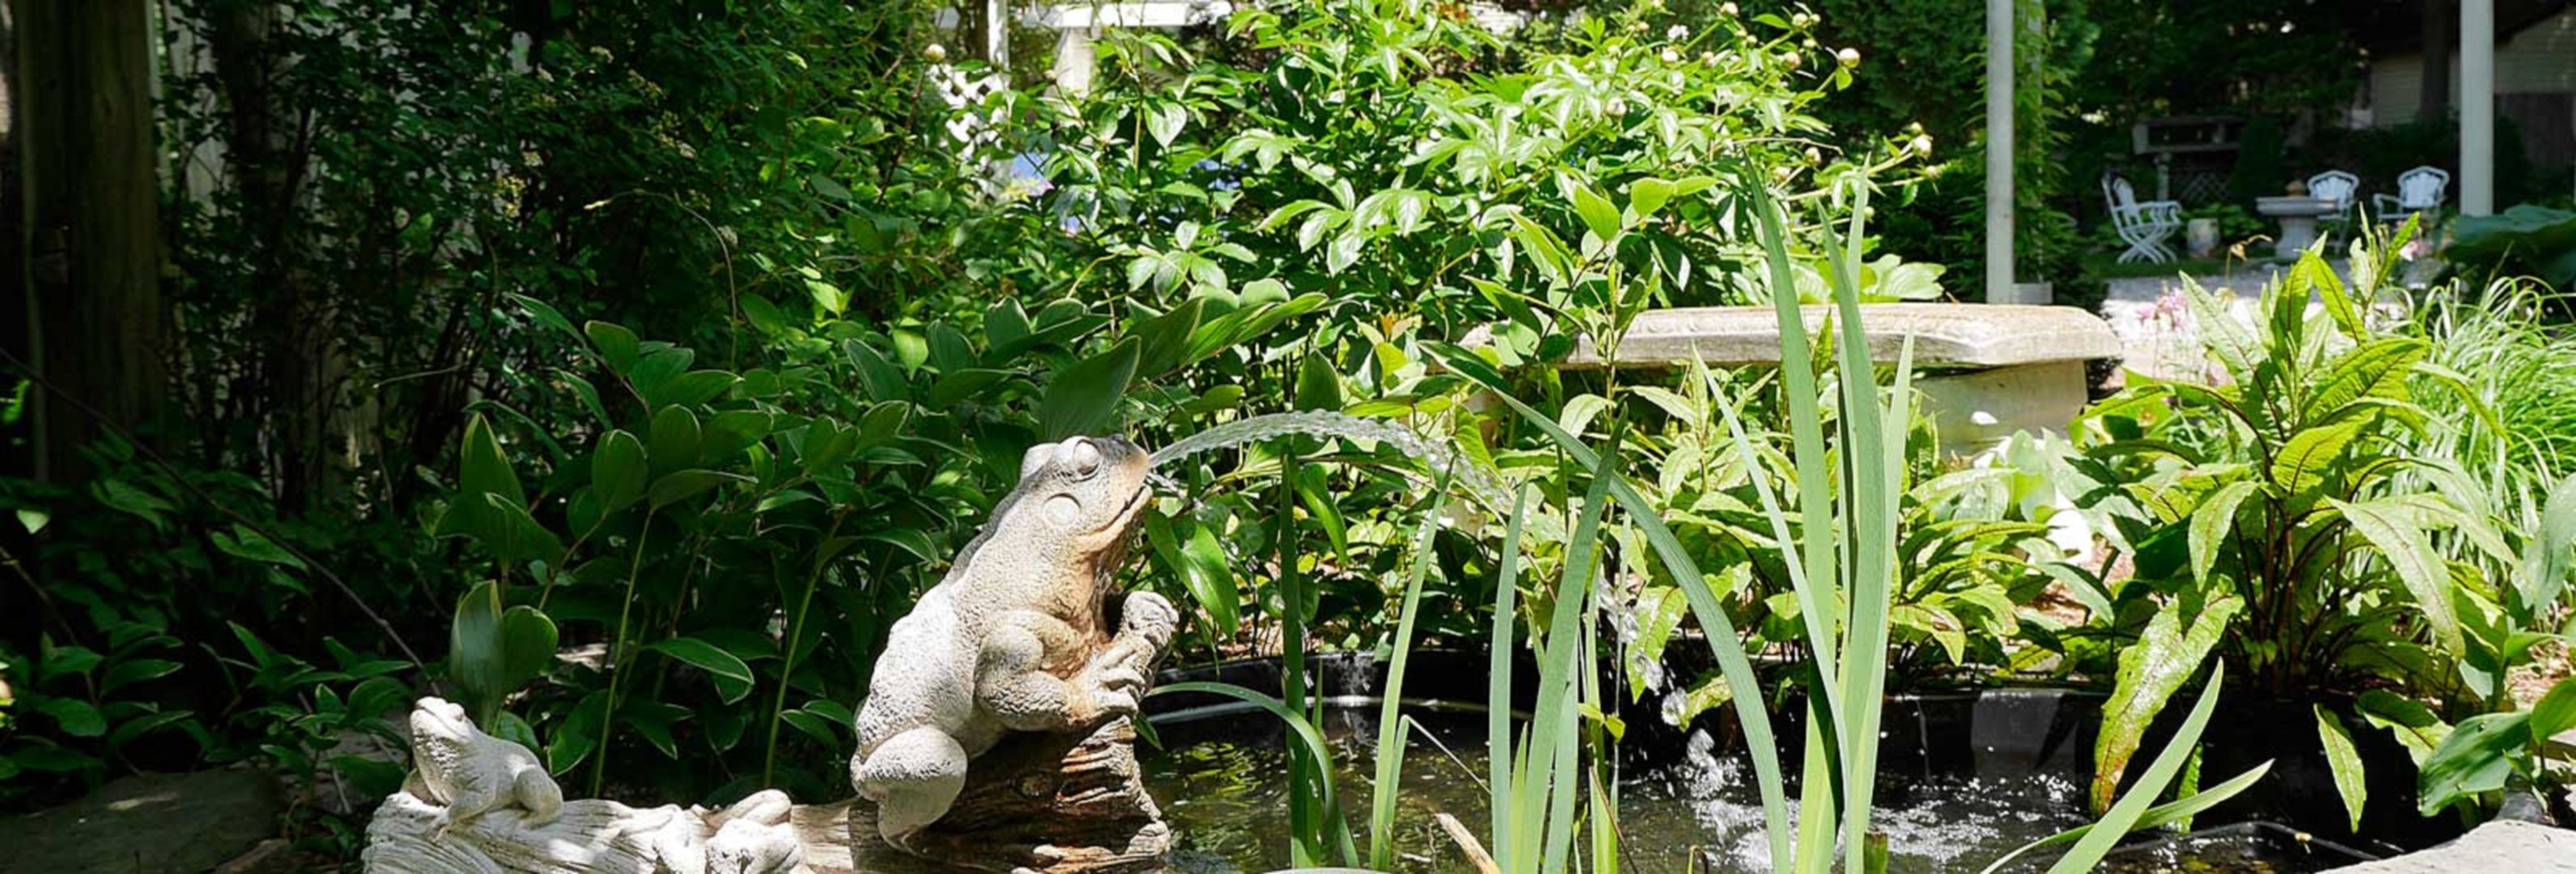 A frog sitting on a statue of a bear at Marywood Manor.